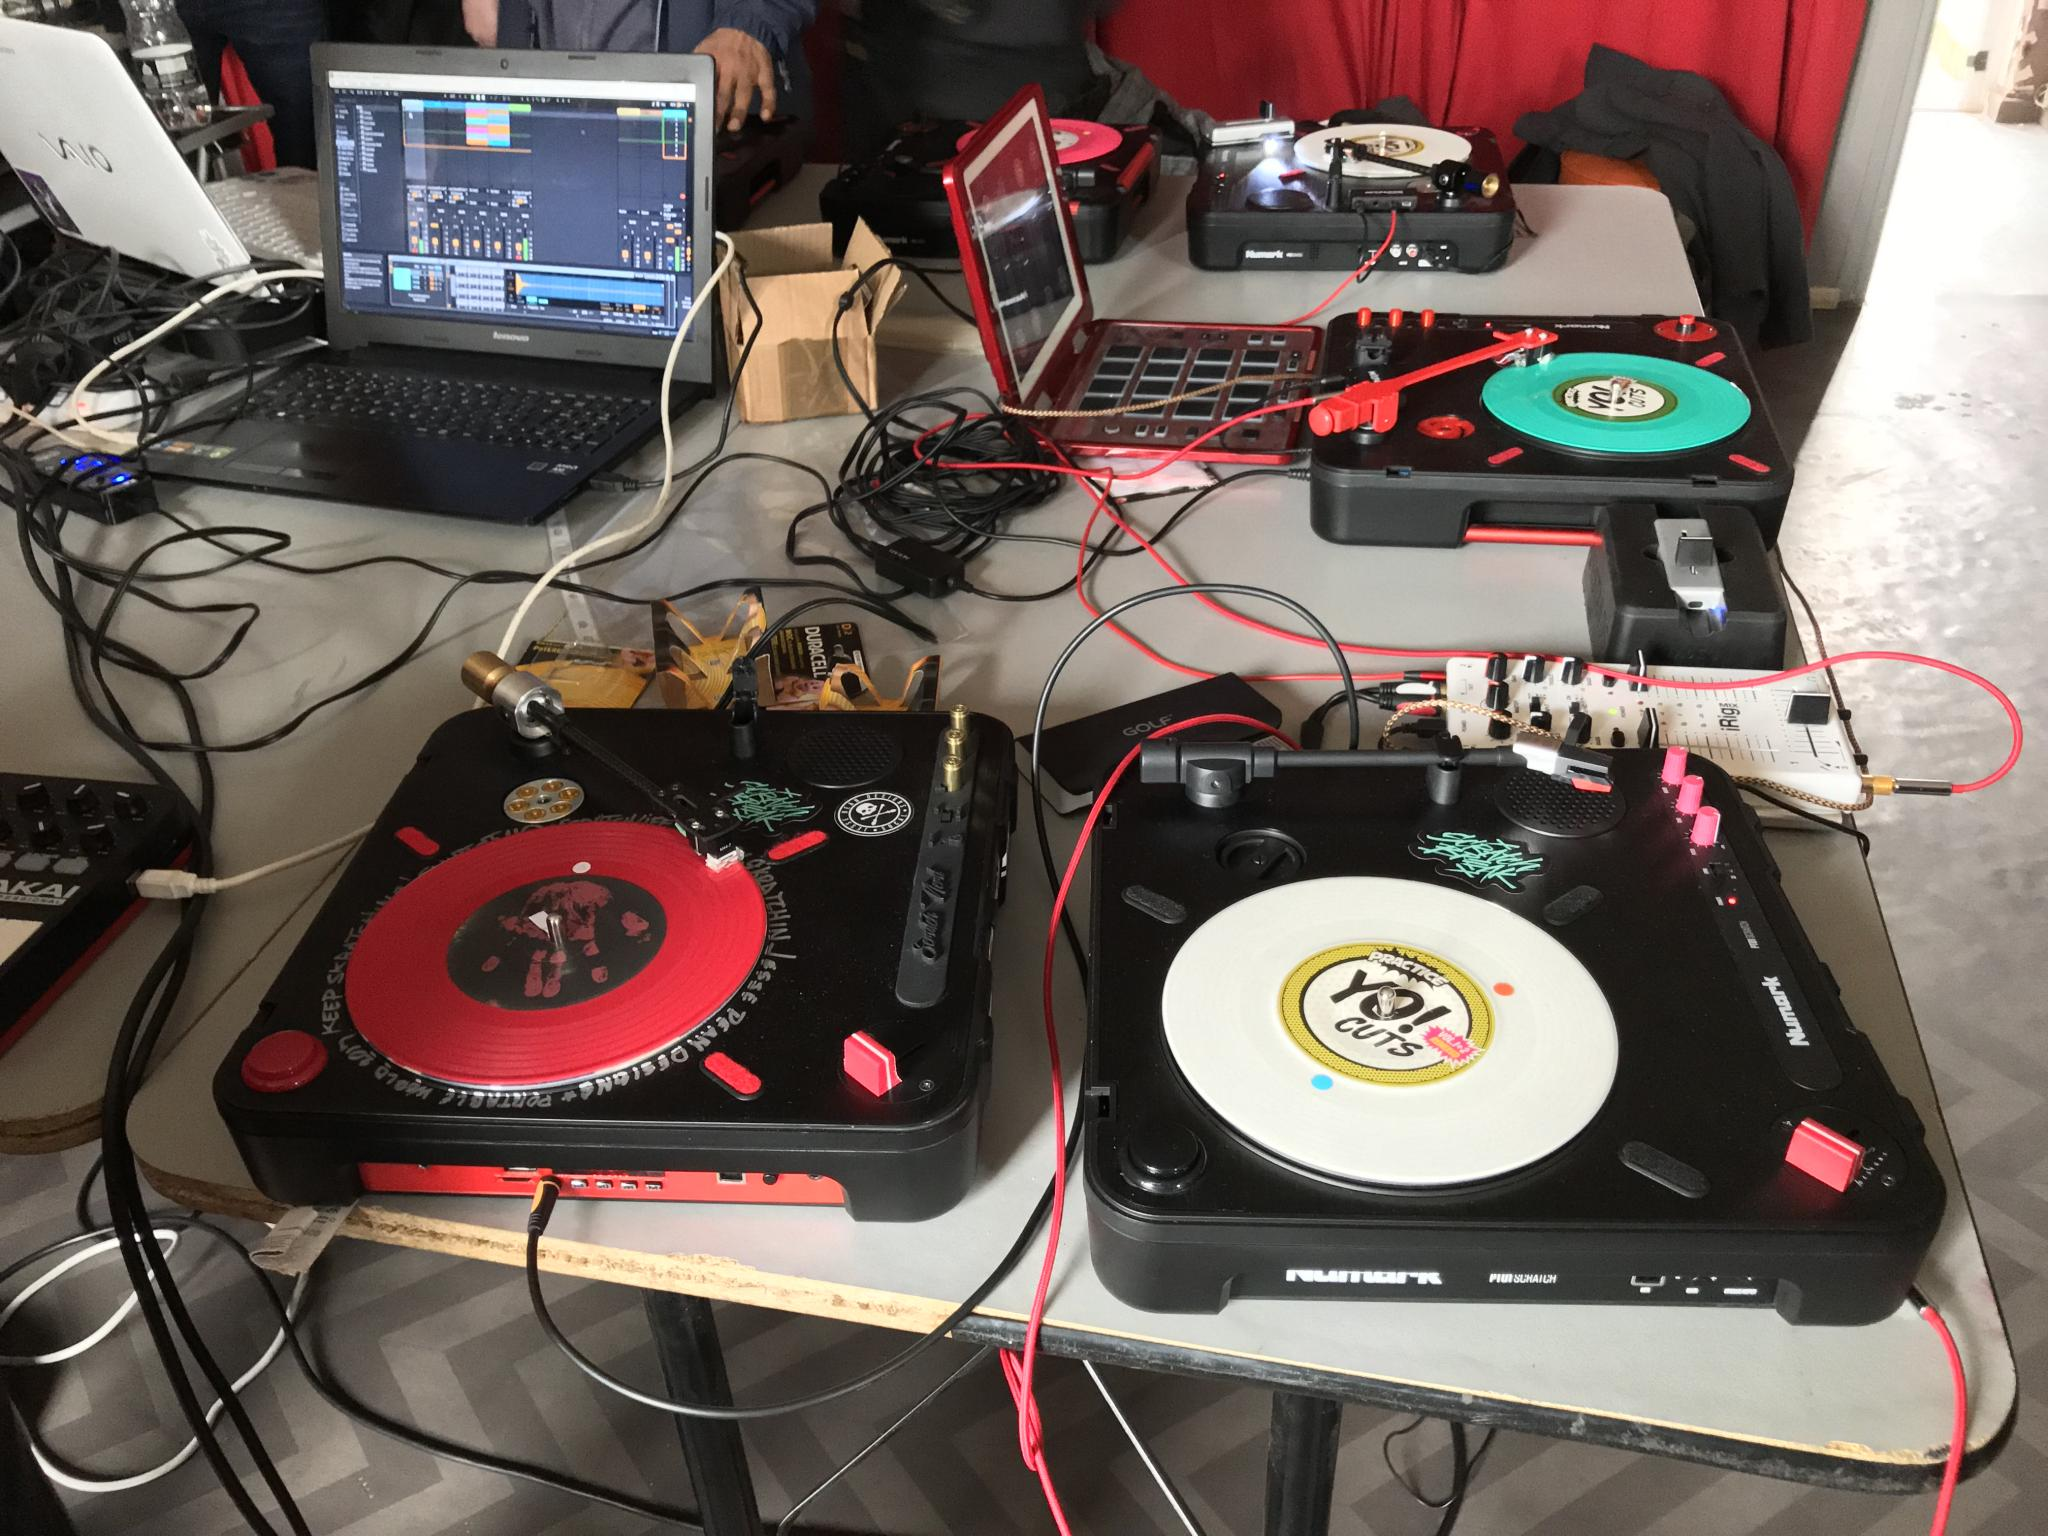 OPINION: The dumbing down of DJ turntables has to stop 8